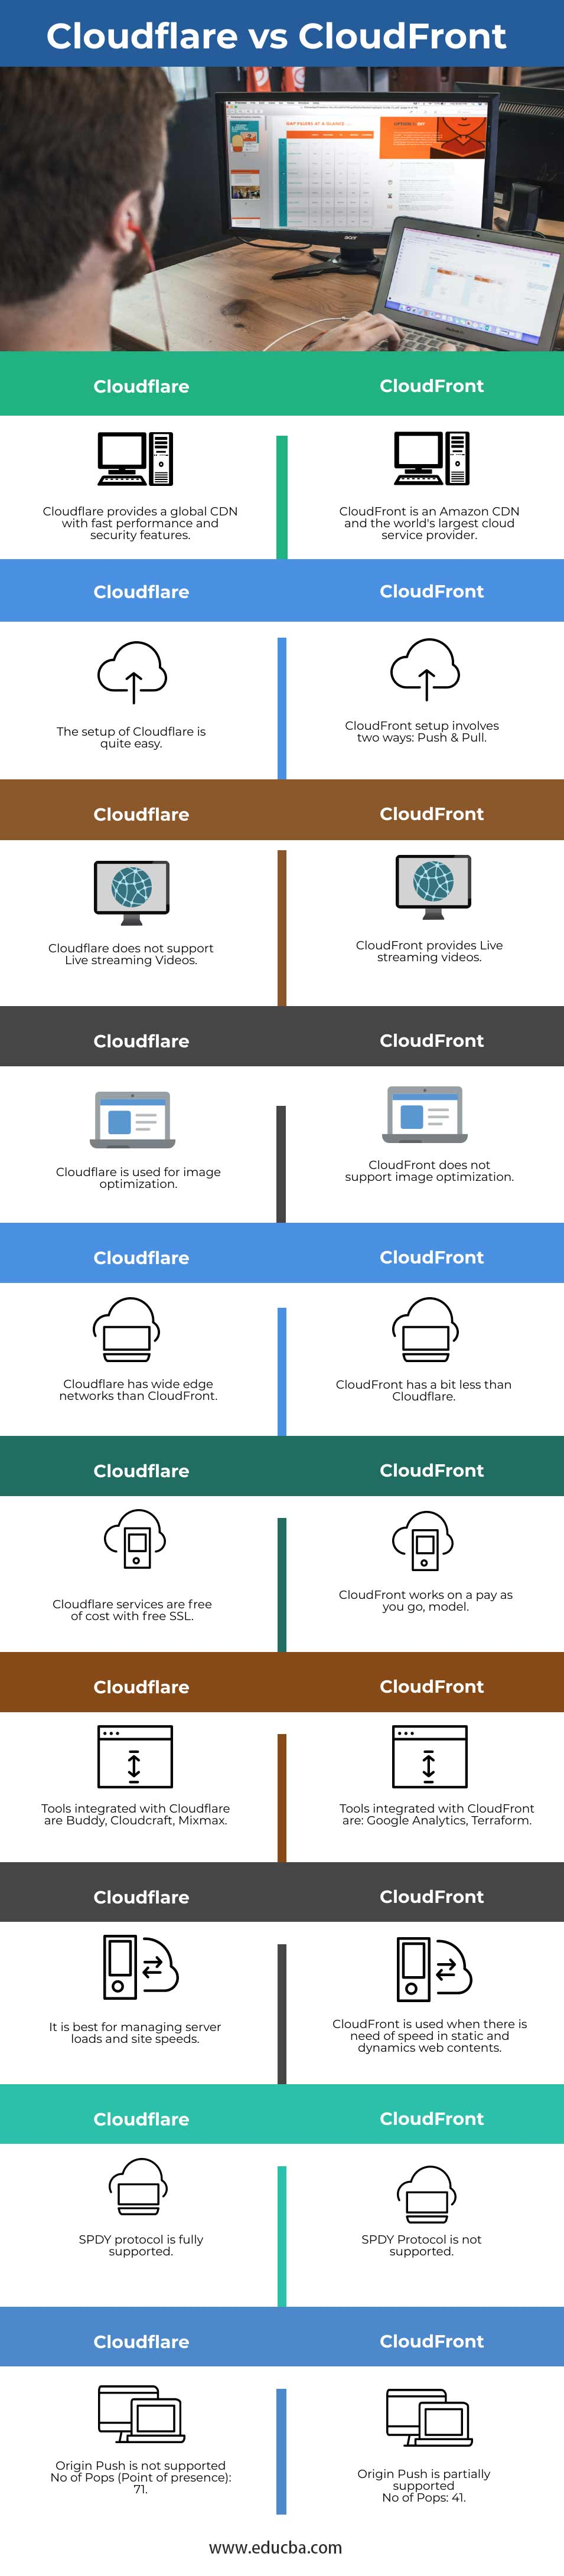 Cloudflare vs CloudFront-info